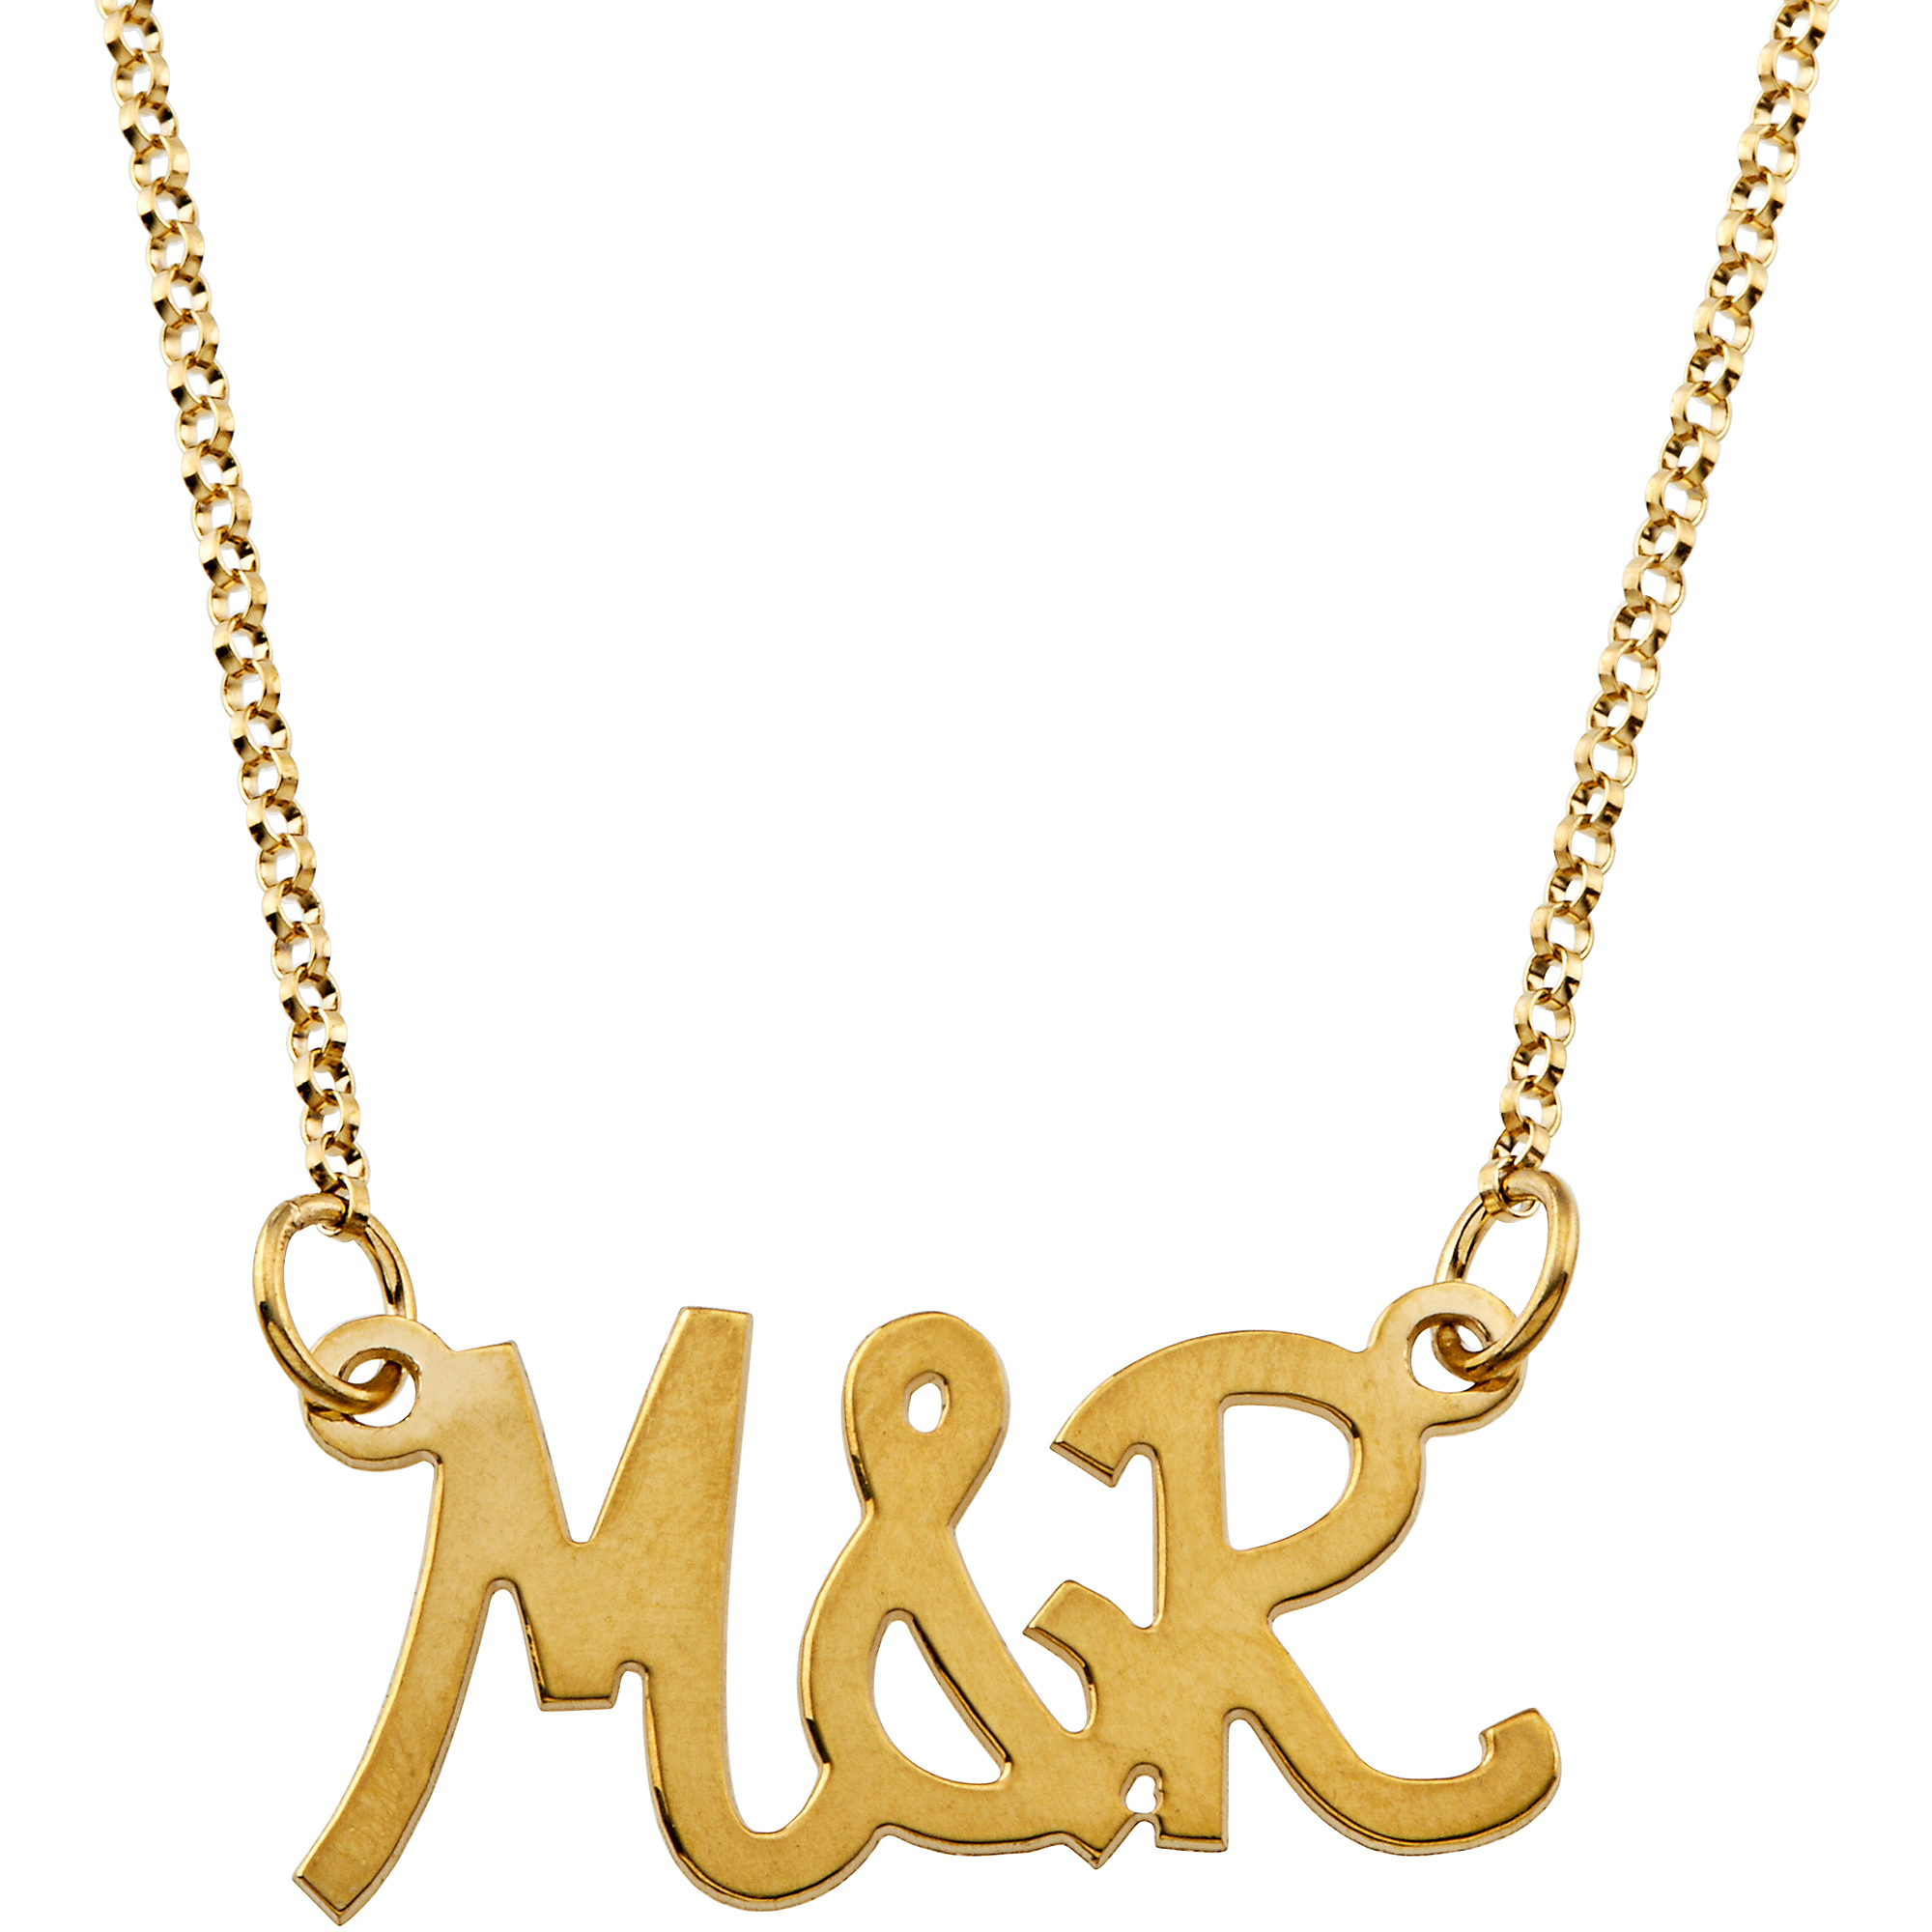 Personalized Women's Gold over Sterling Sivler Uppercase Initial Couples Necklace